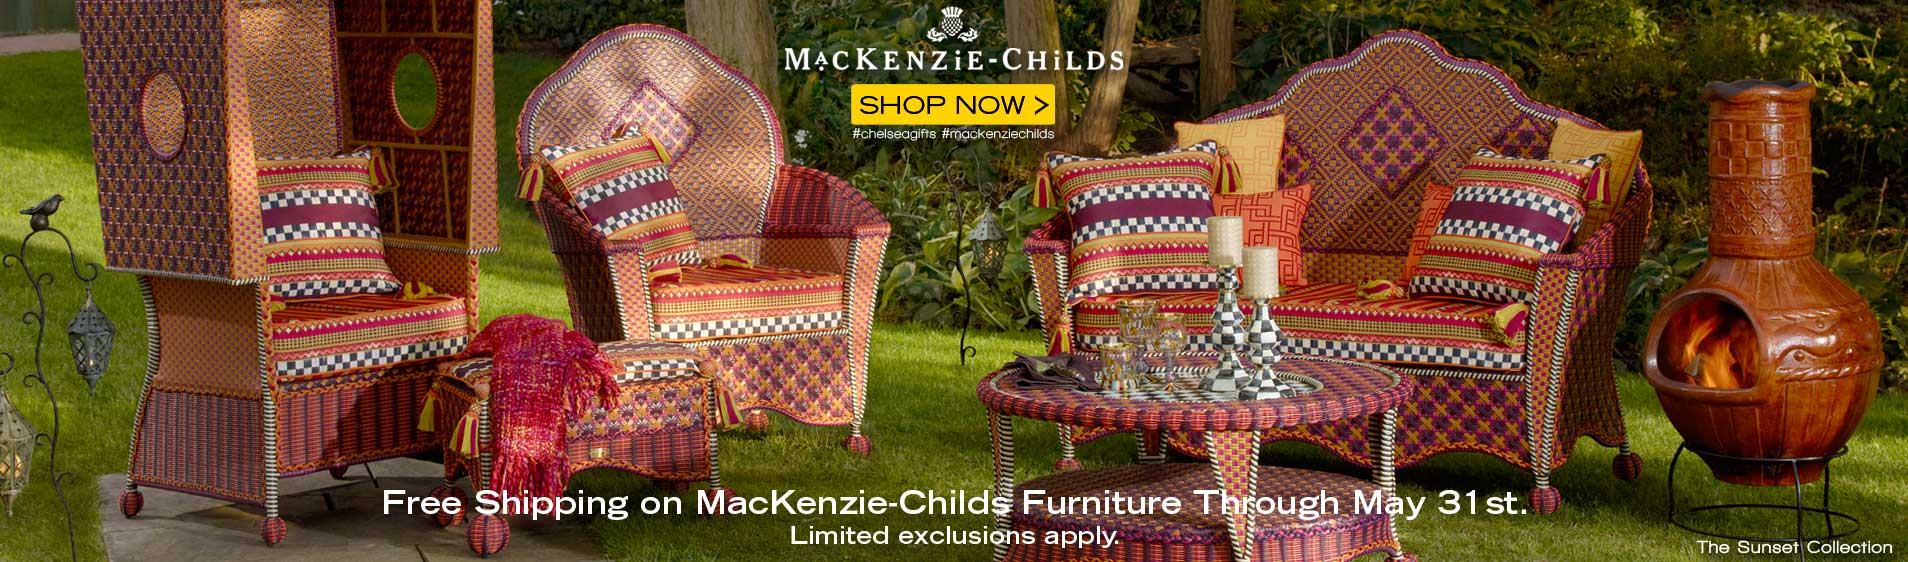 MacKenzie-Childs Outdoor